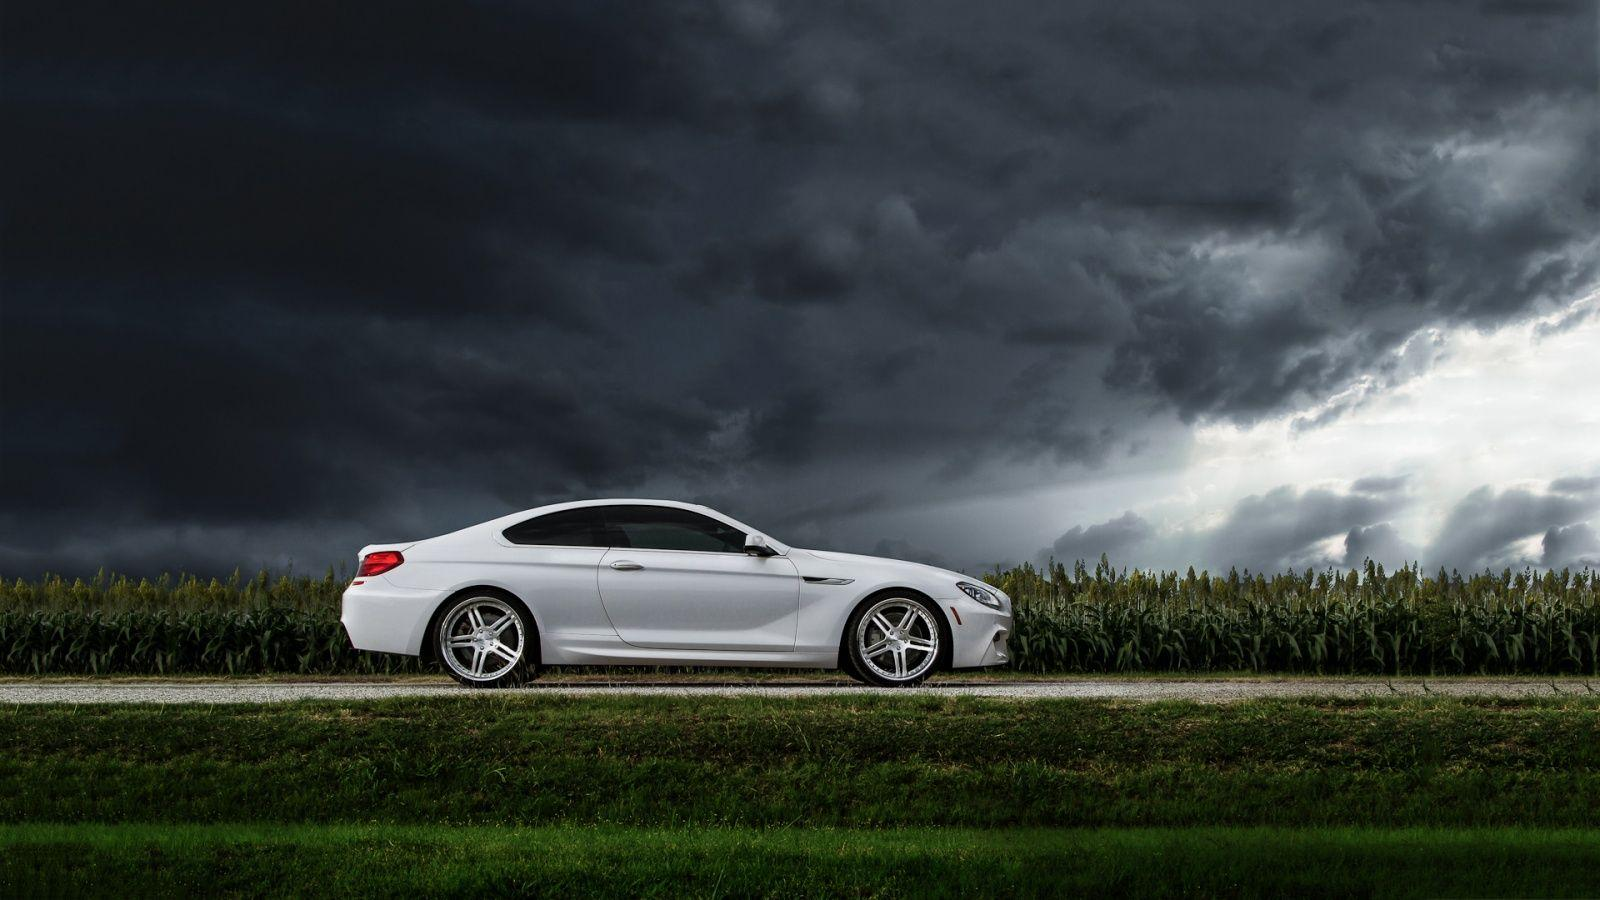 27 BMW 6 Series Wallpapers in High